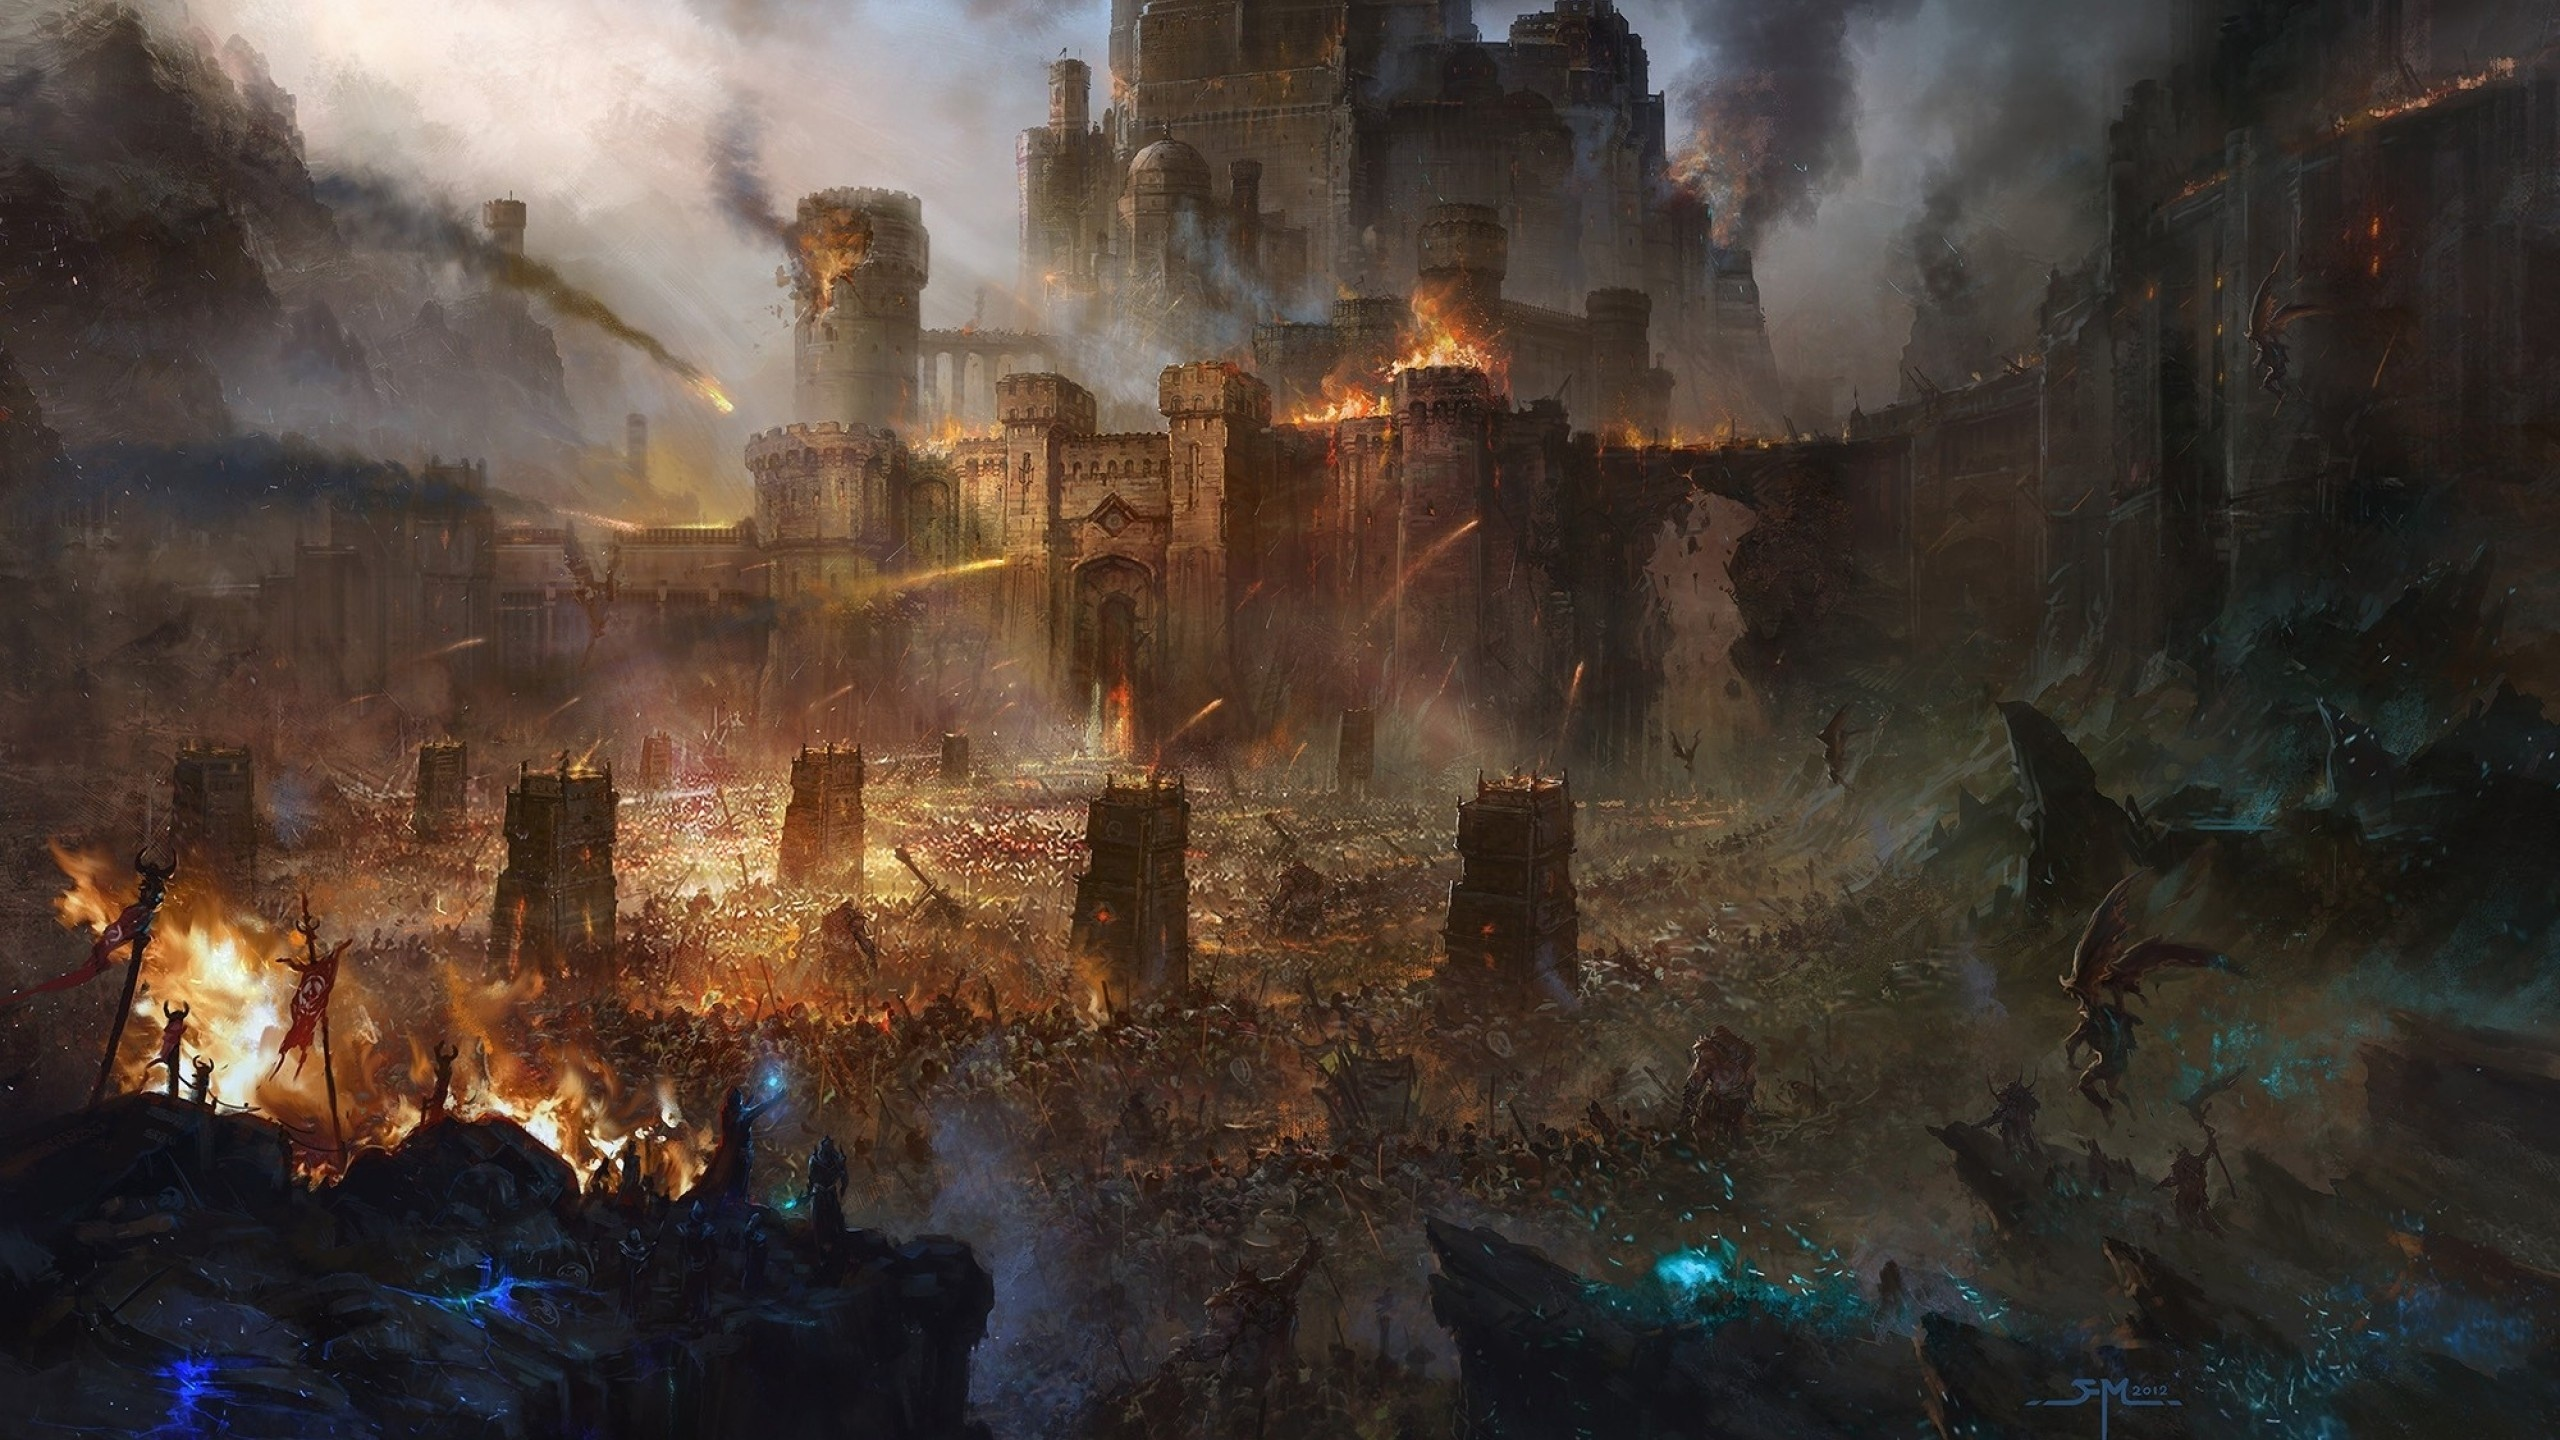 Warhammer Total War 2 Wallpaper 2560 X 1440 Dark Elves: 2560x1440 Siege Fantasy Art Desktop PC And Mac Wallpaper